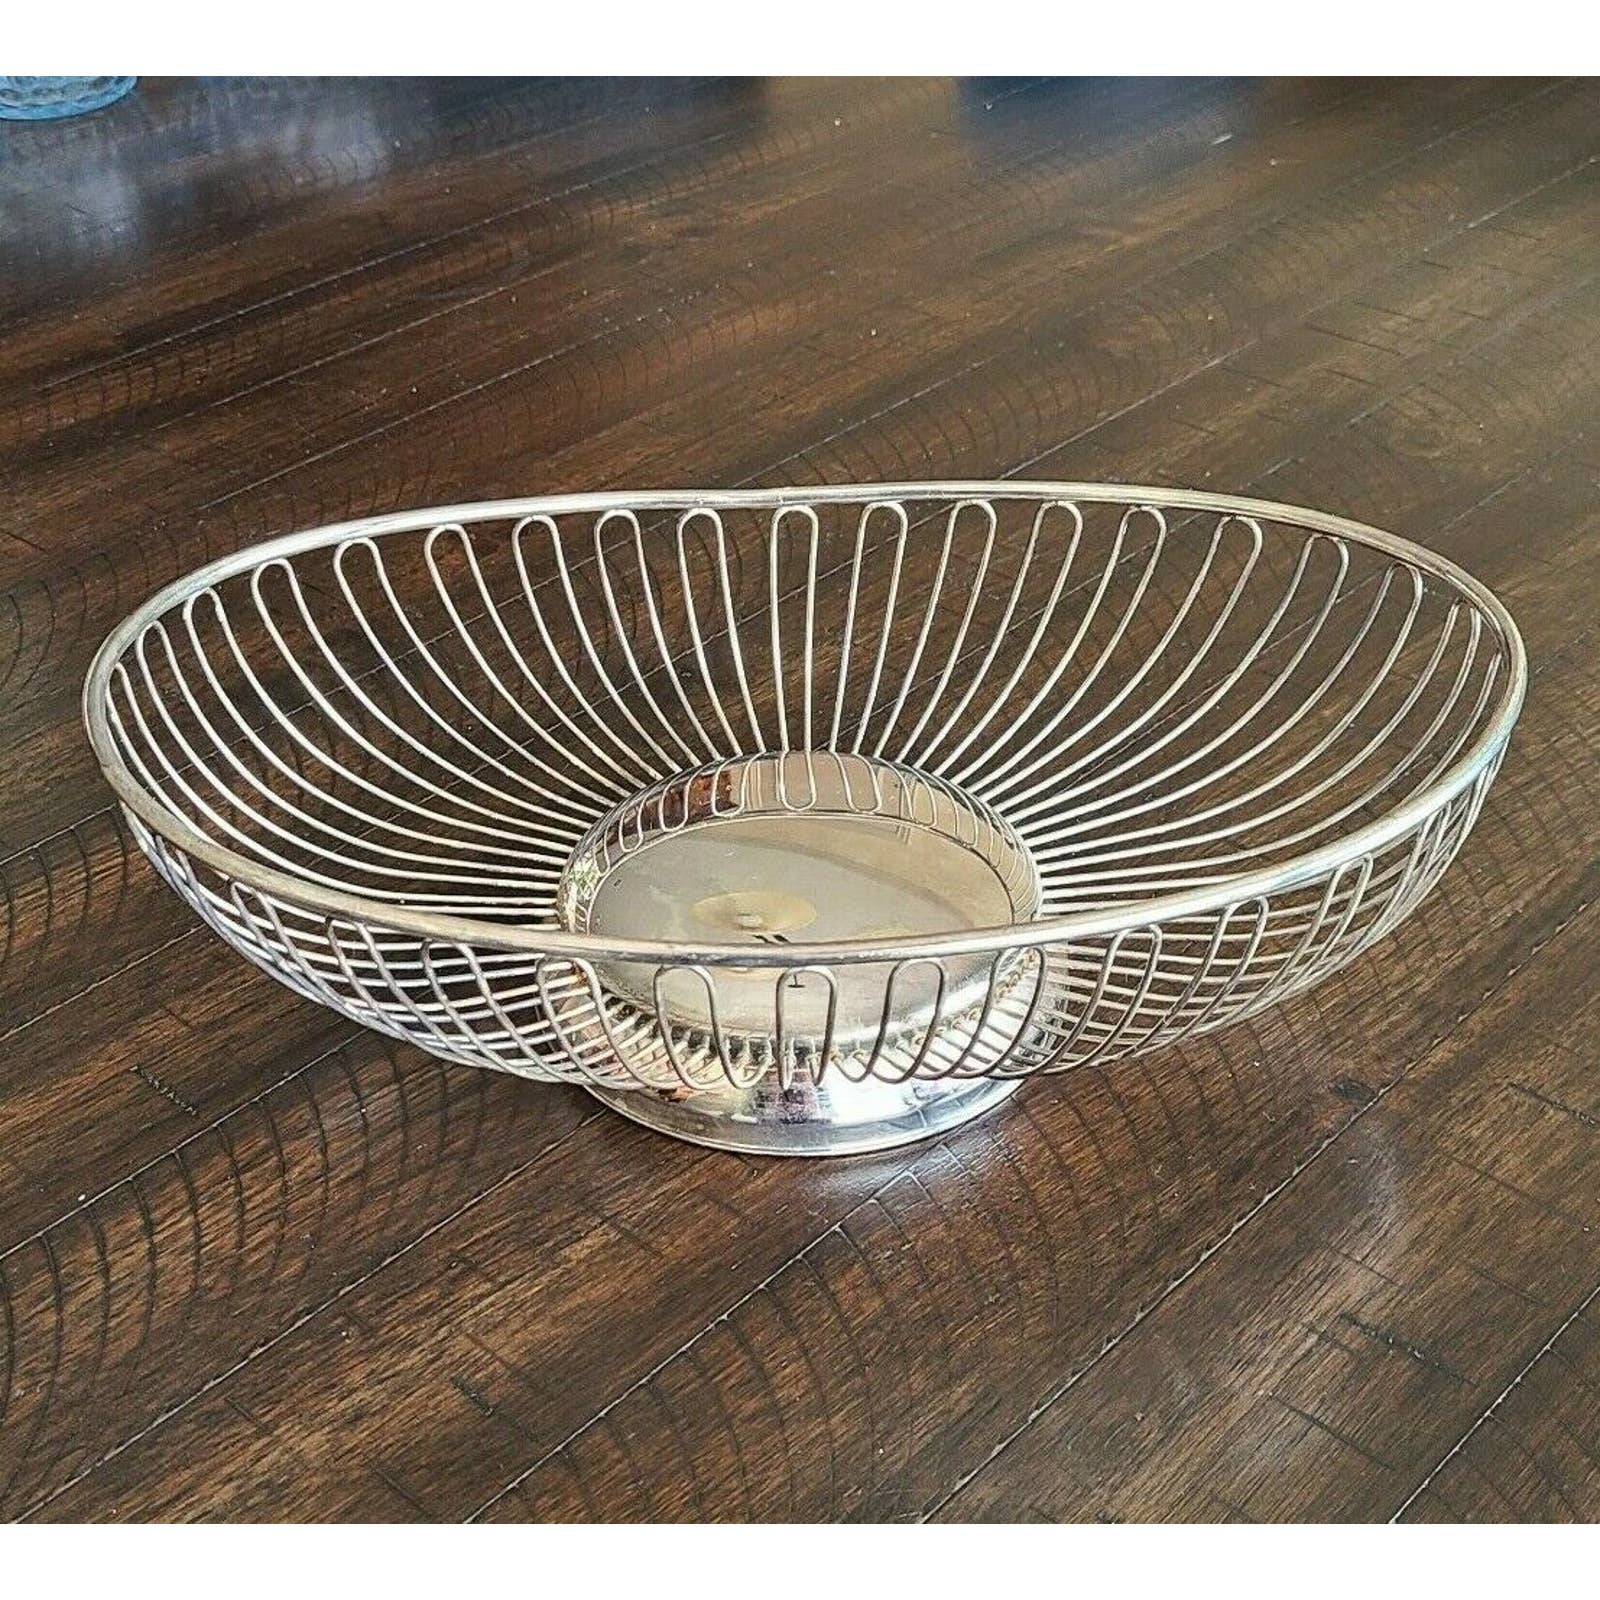 Product Image 1 - Vintage Silverplate Oblong Oval Wire